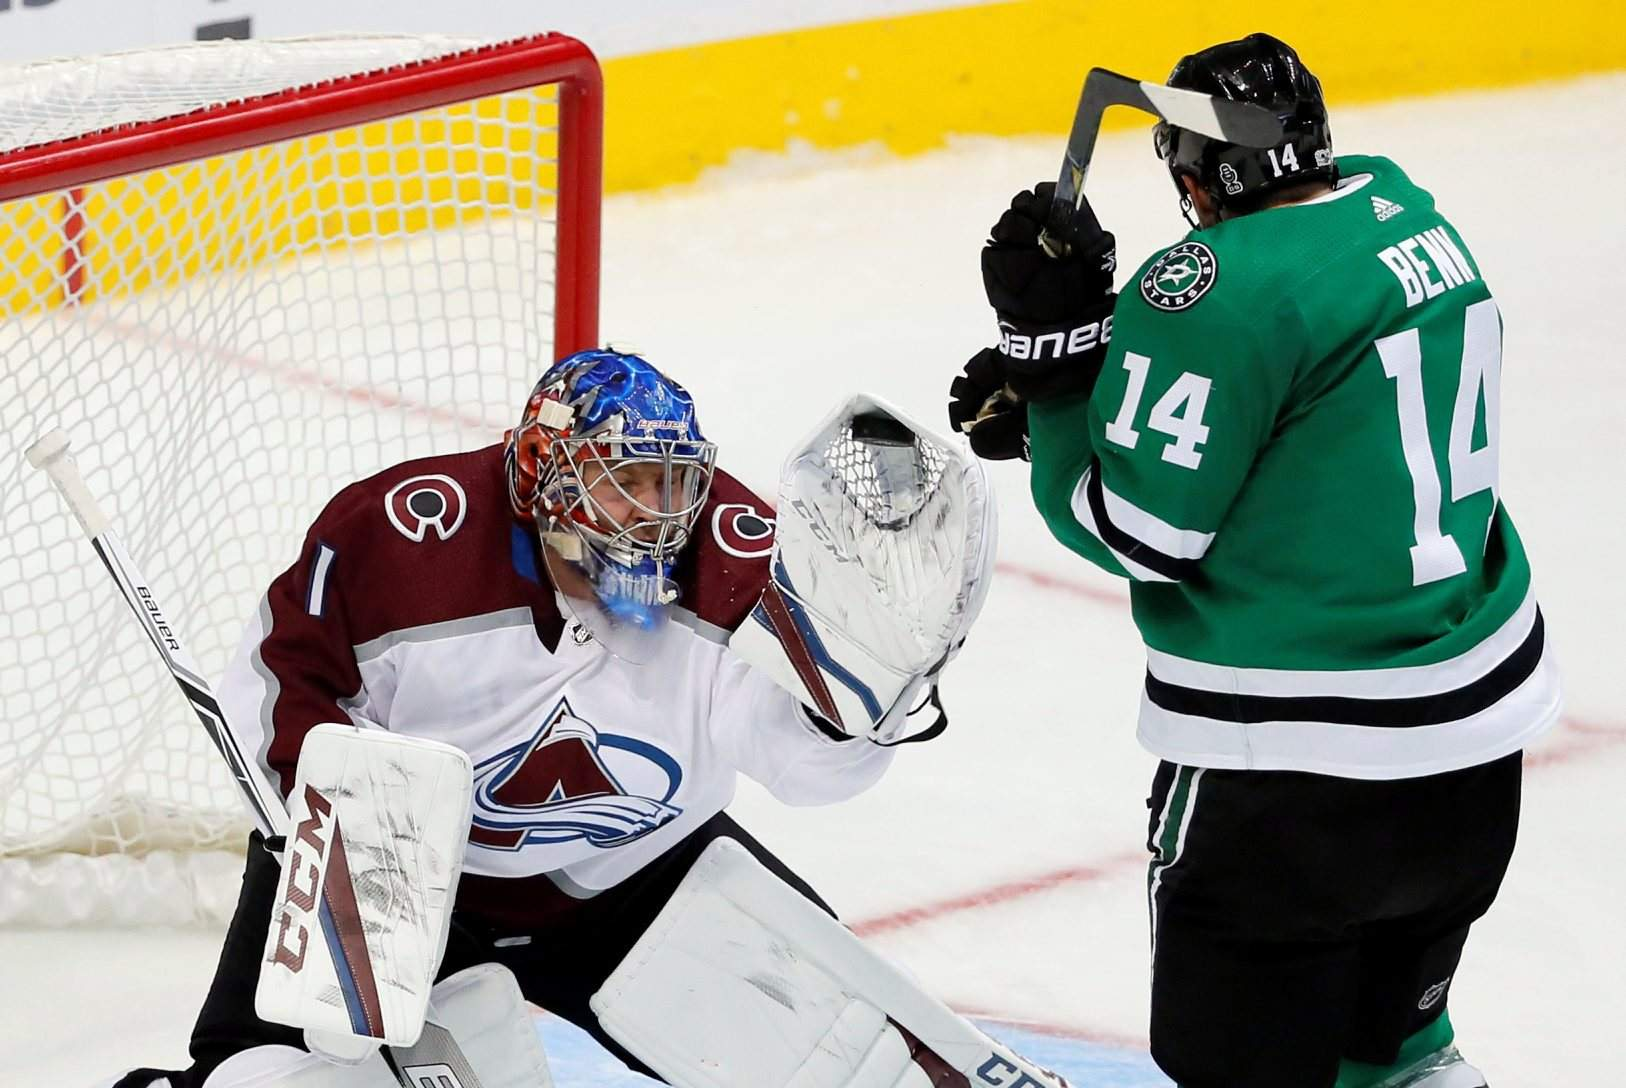 3aabe4d280a Colorado Avalanche goalie Semyon Varlamov (1) gloves a shot under pressure  from Dallas Stars left wing Jamie Benn (14) in the third period of a  preseason ...